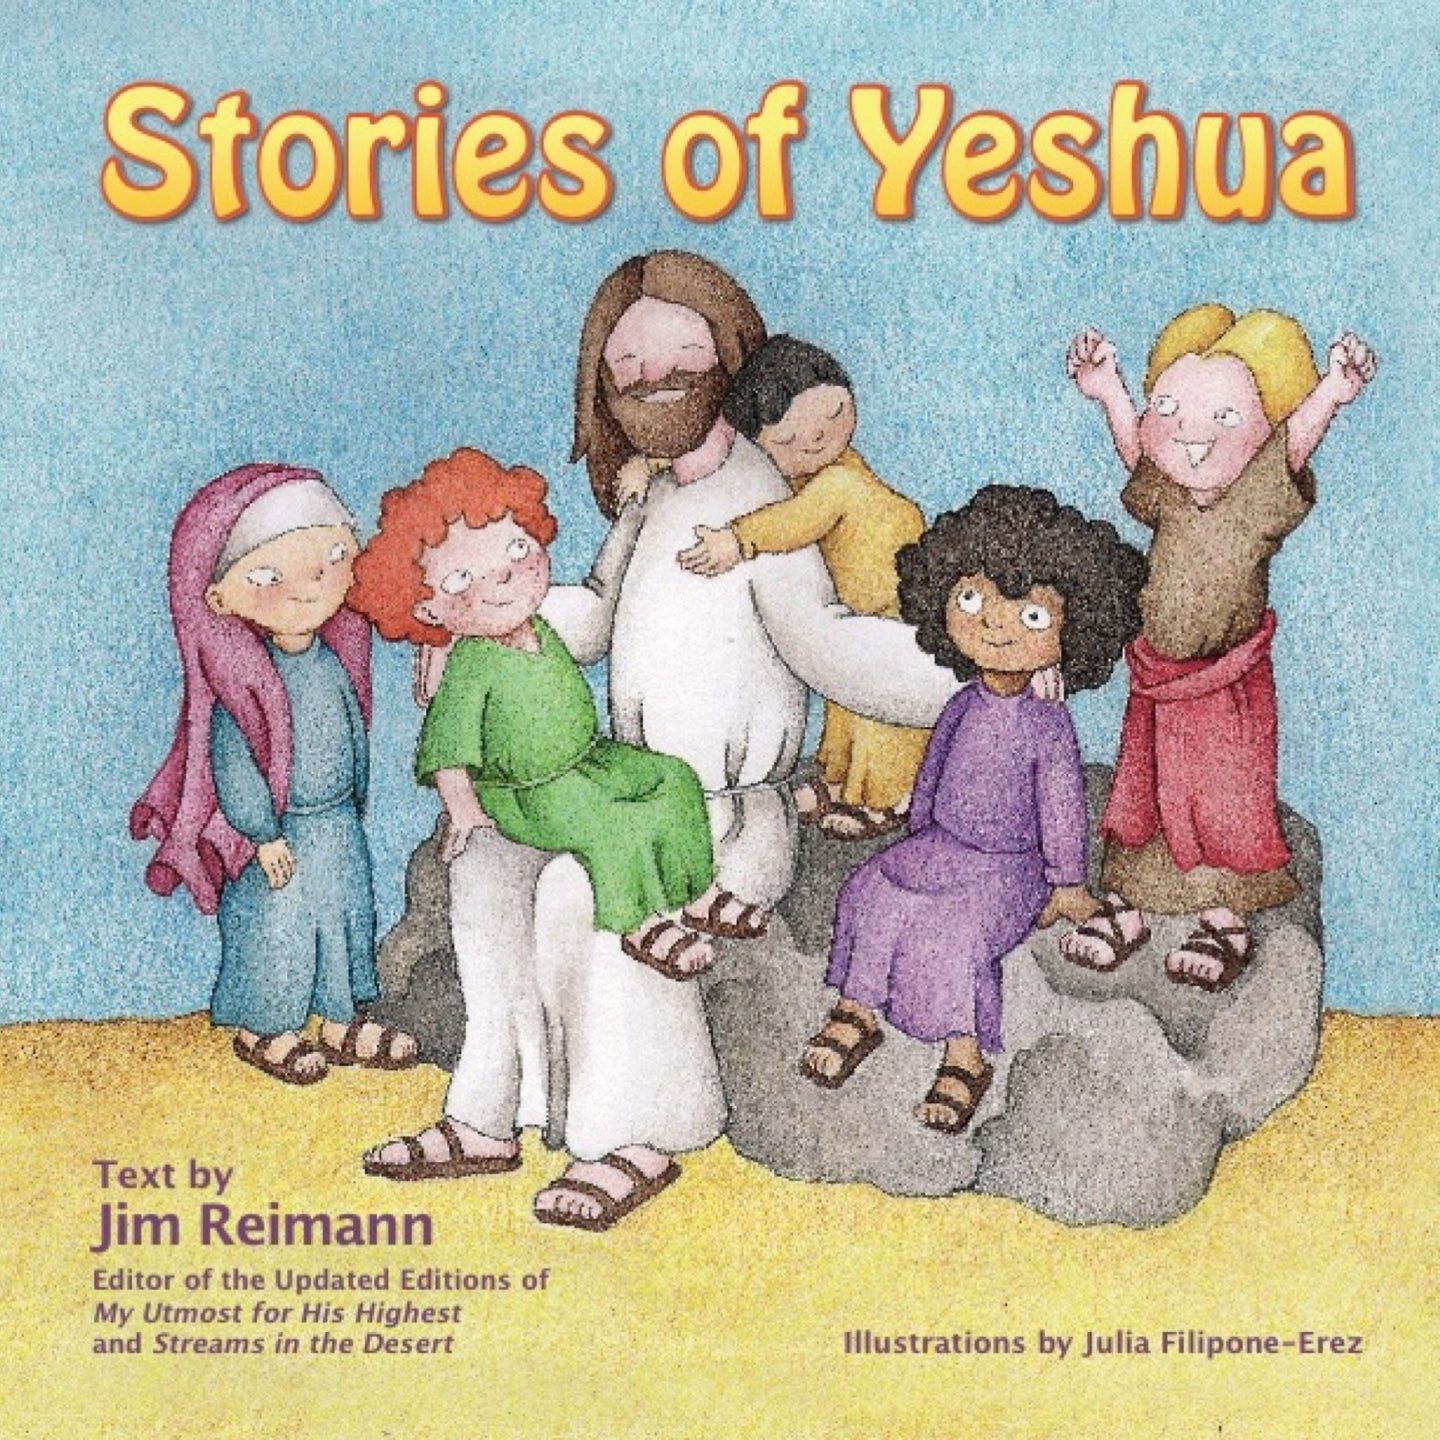 Stories of Yeshua by Jim Reimann